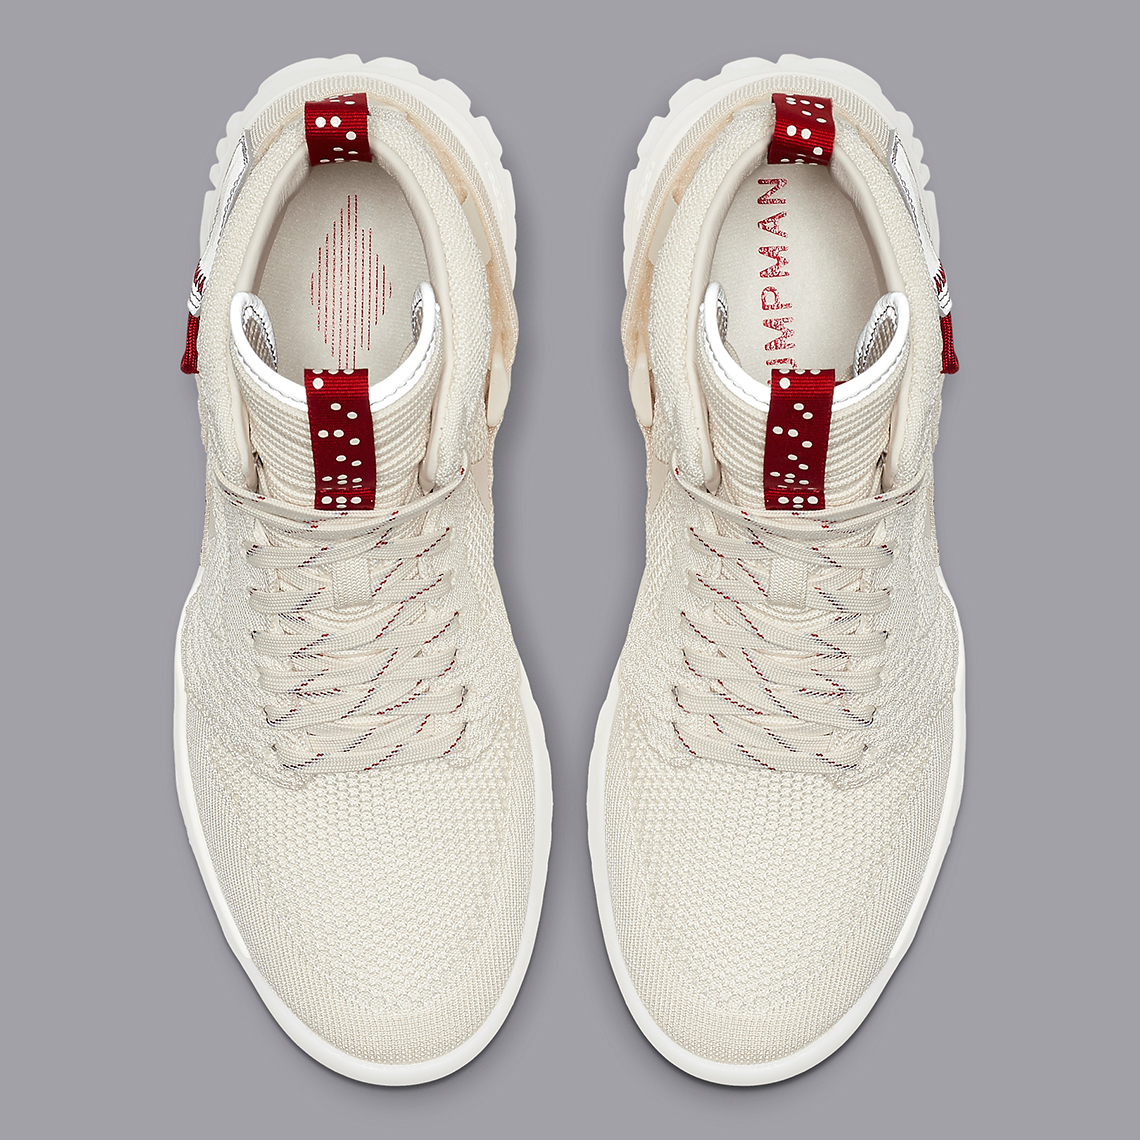 7db25fc82c6d2 The Jordan Apex React Is Dropping Soon In New Cream Uppers